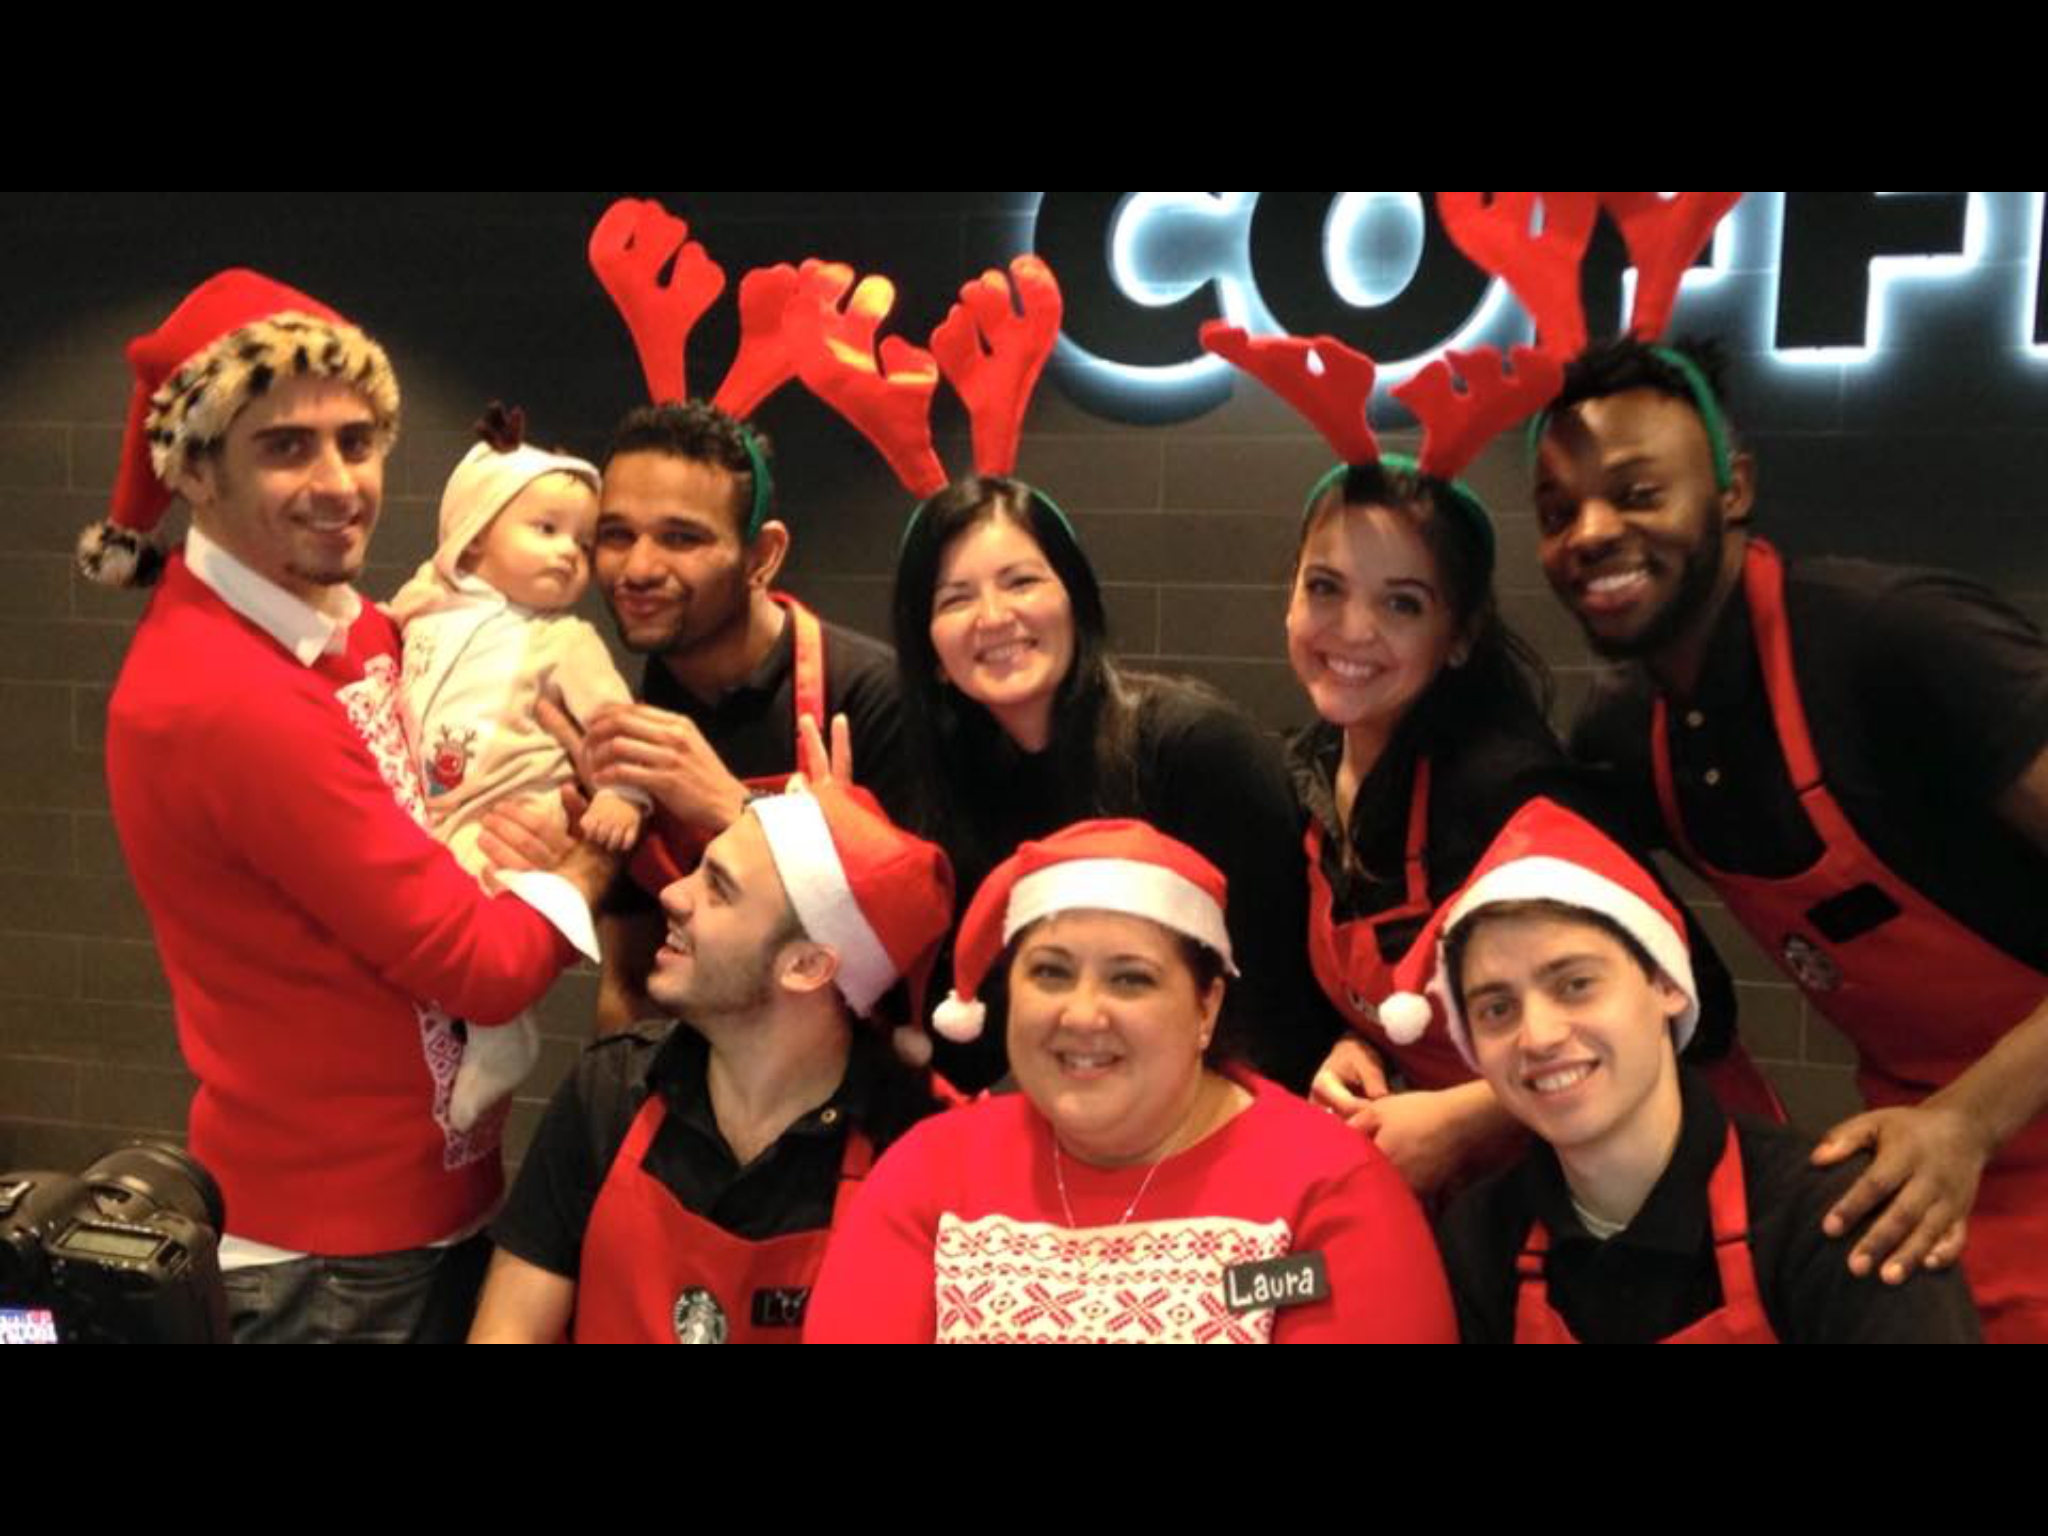 Starbucks staff dressing up at Christmas.